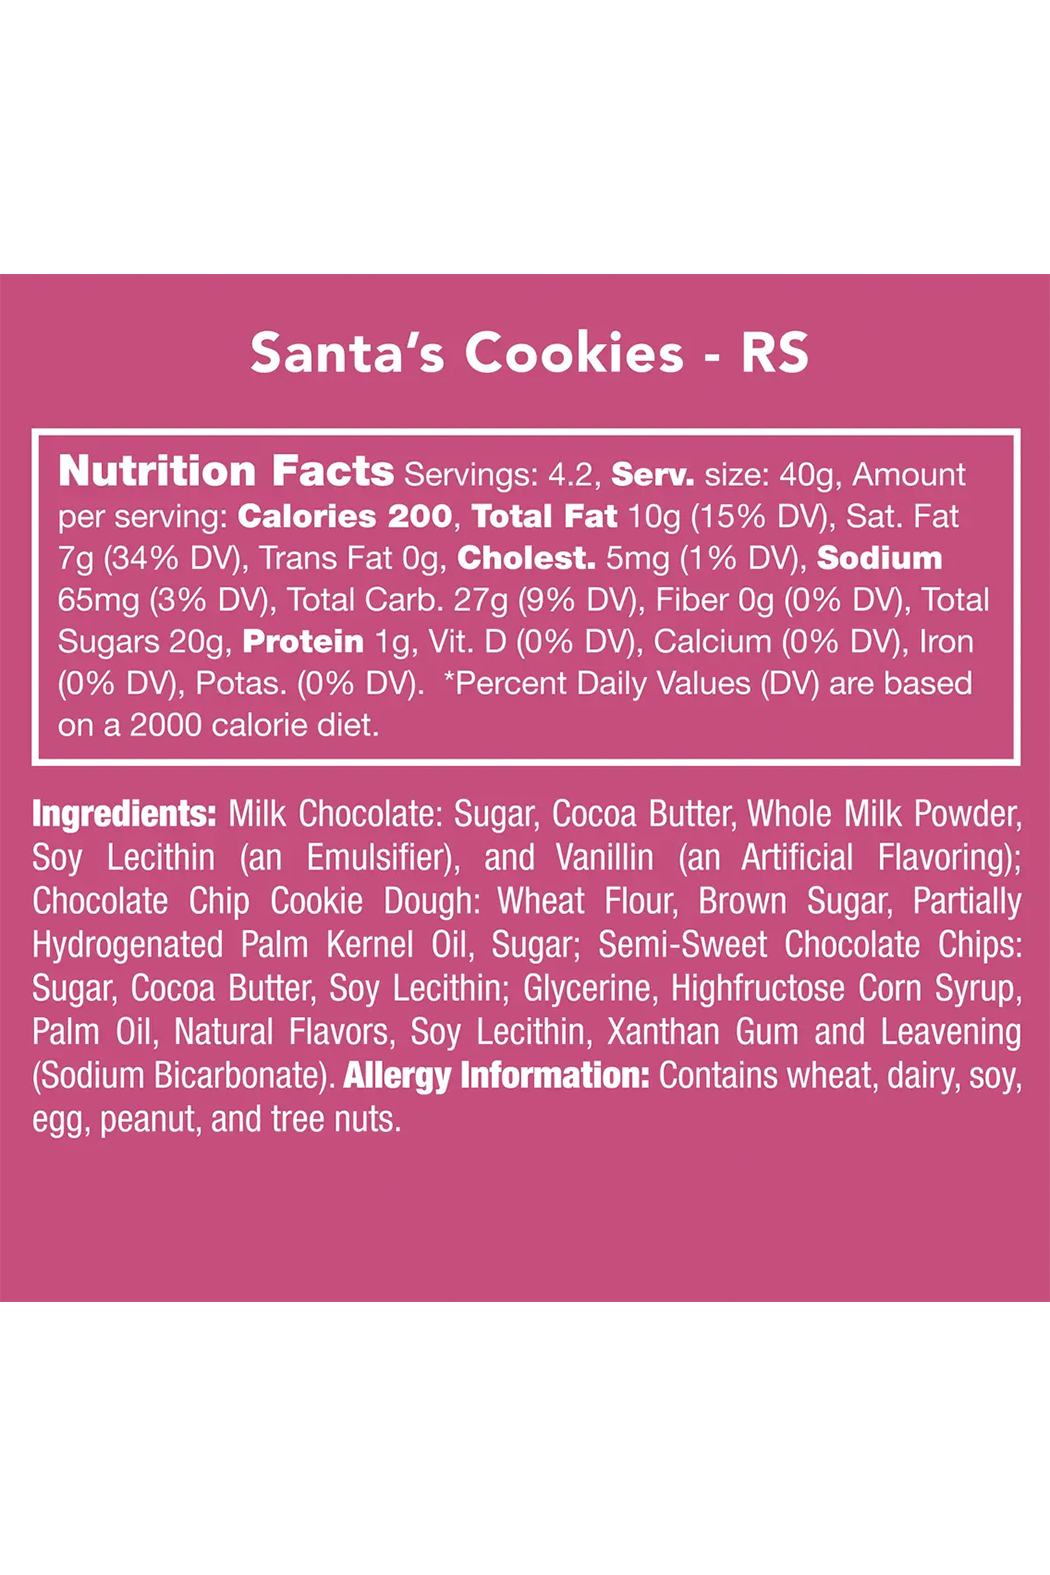 Candy Club Santa's Cookies - Front Full Image